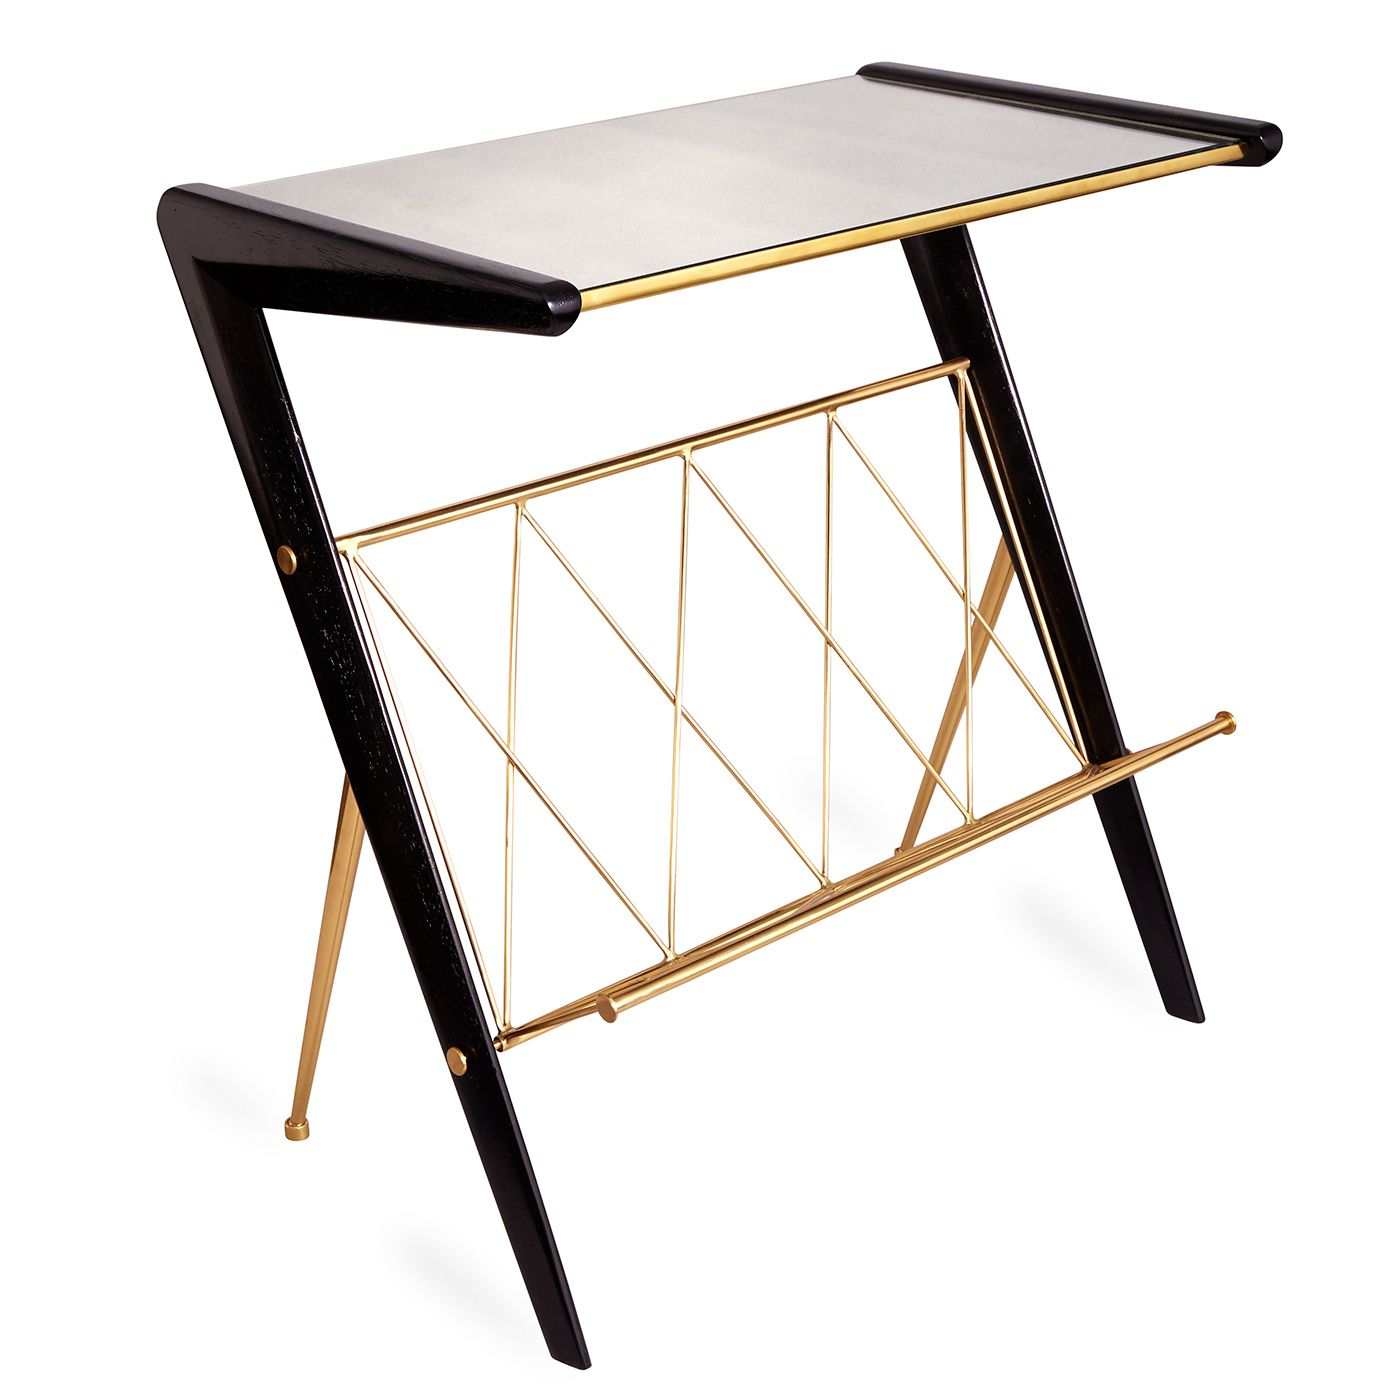 st germain side table jonathan adler tables and townhouse